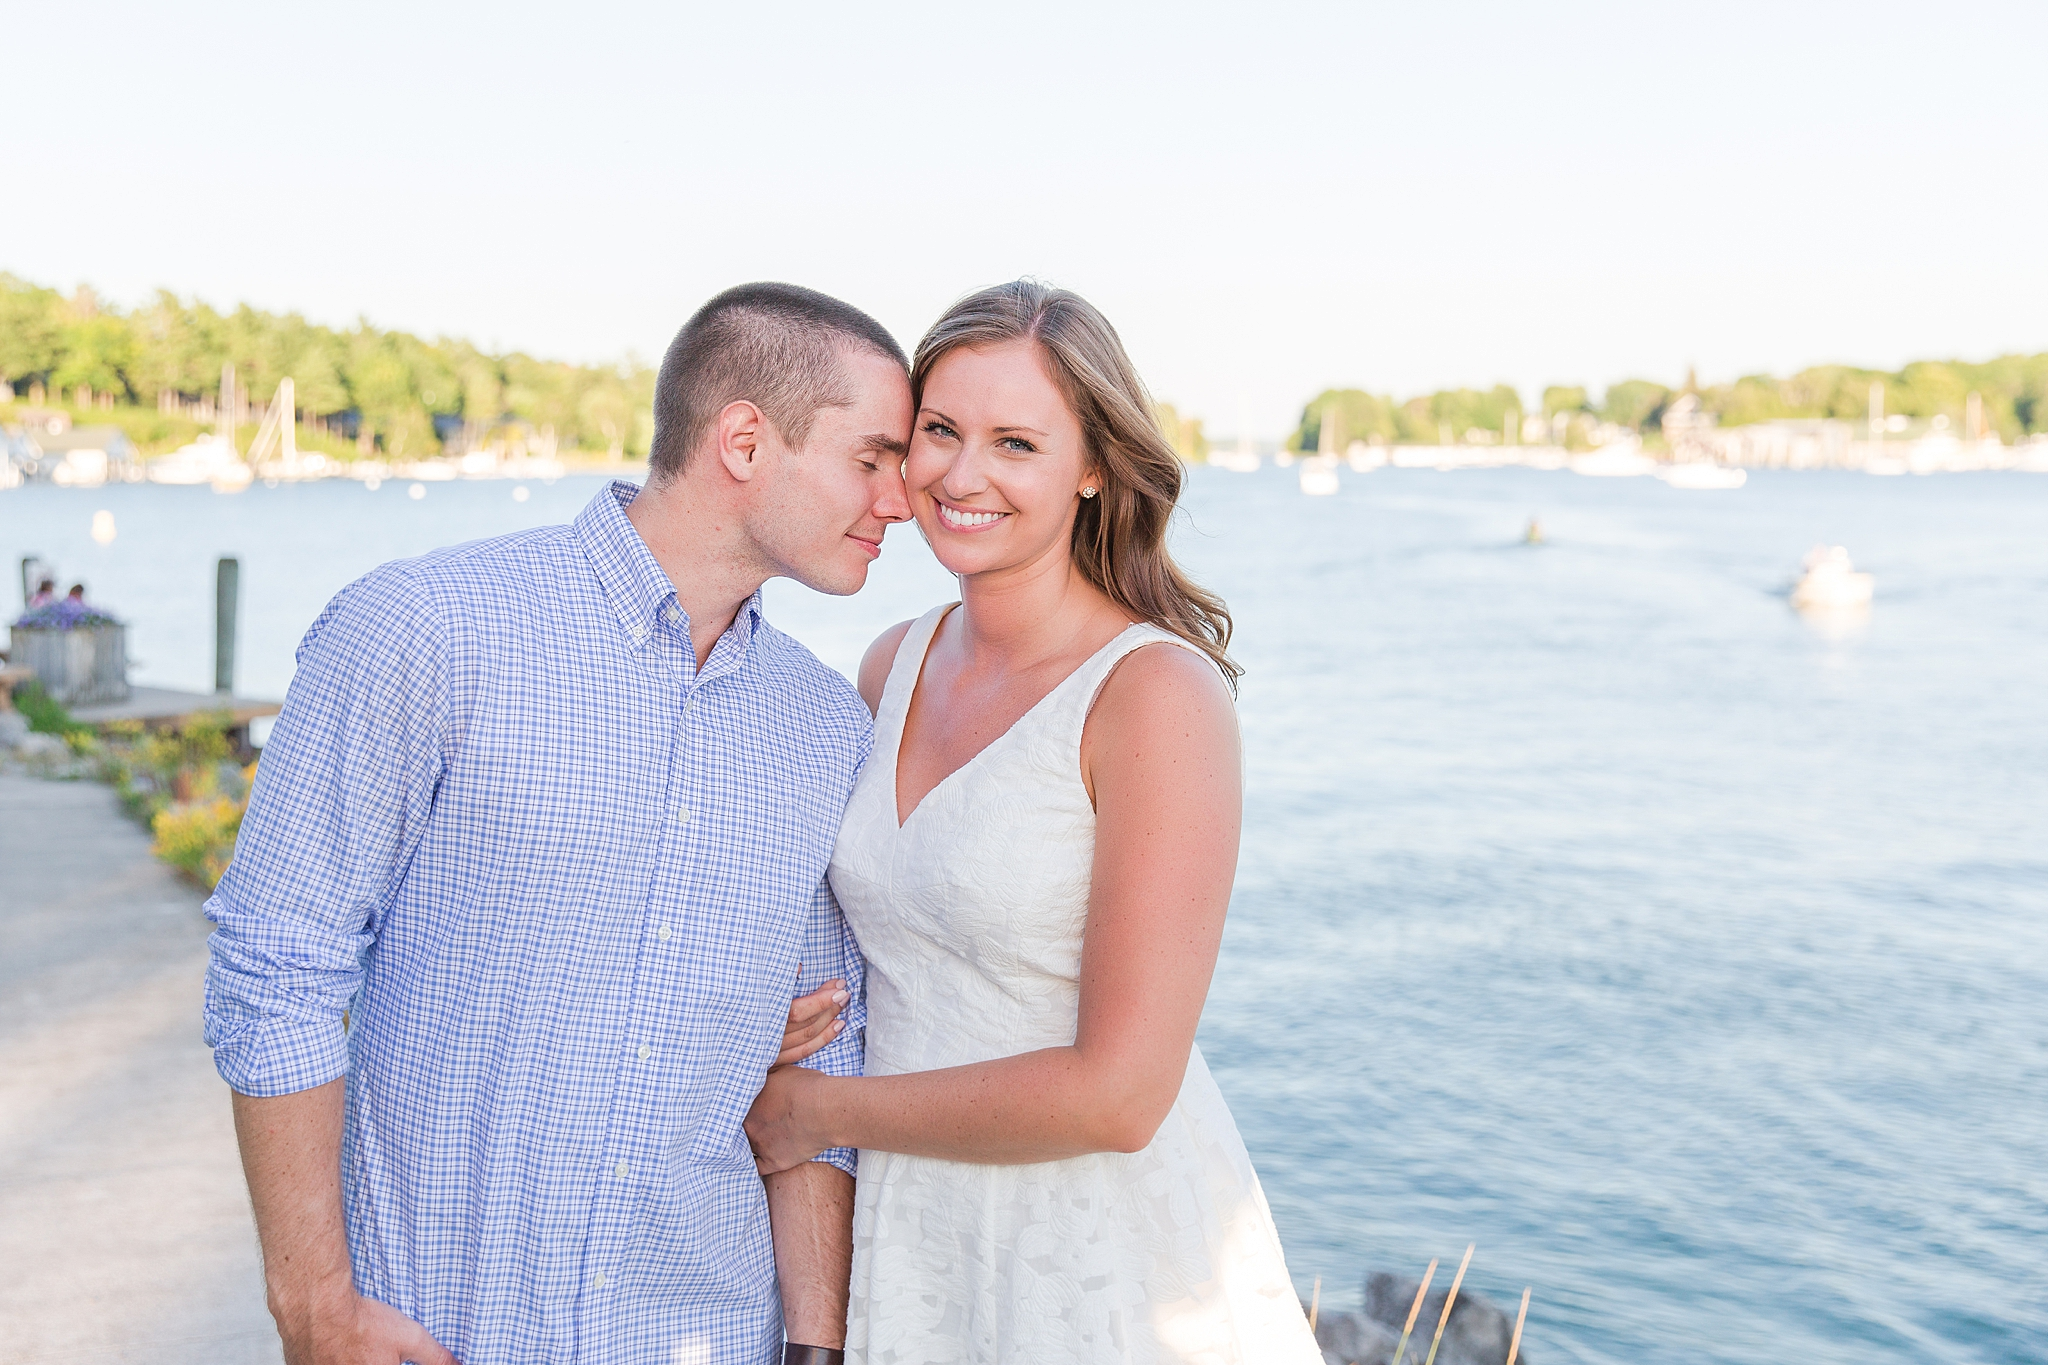 waterfront-lighthouse-engagement-photography-in-charlevoix-mi-by-courtney-carolyn-photography_0002.jpg